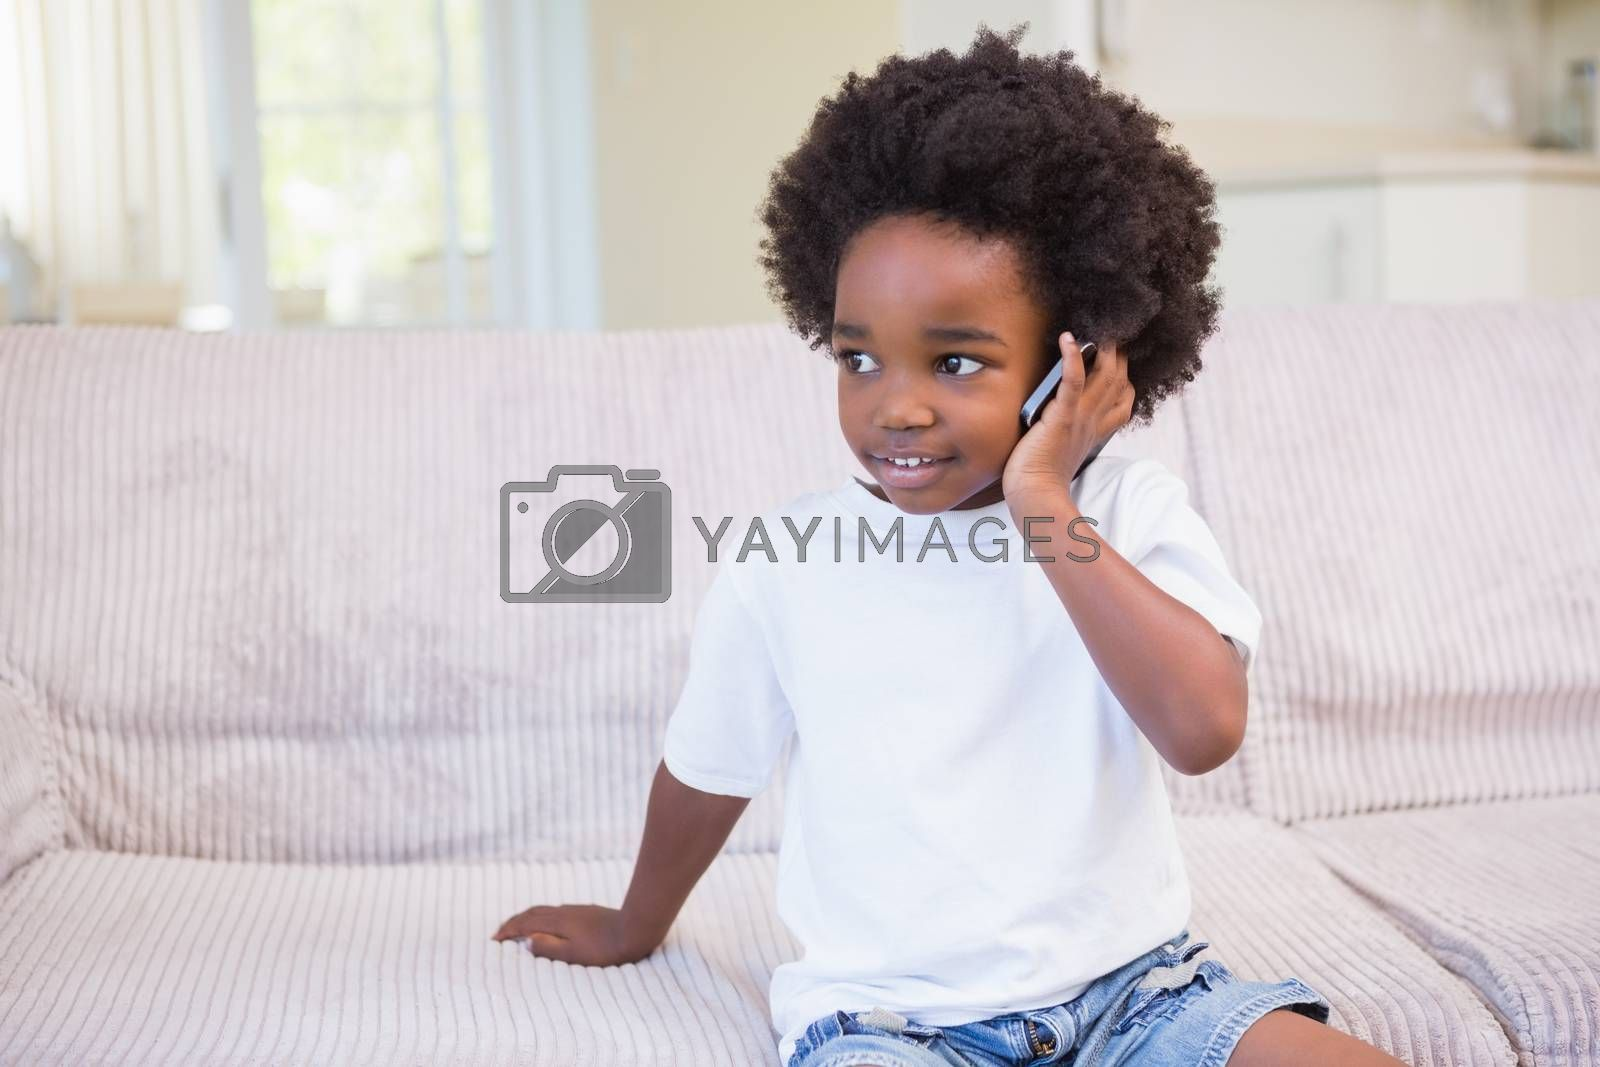 Royalty free image of Little boy using a technology and phoning by Wavebreakmedia